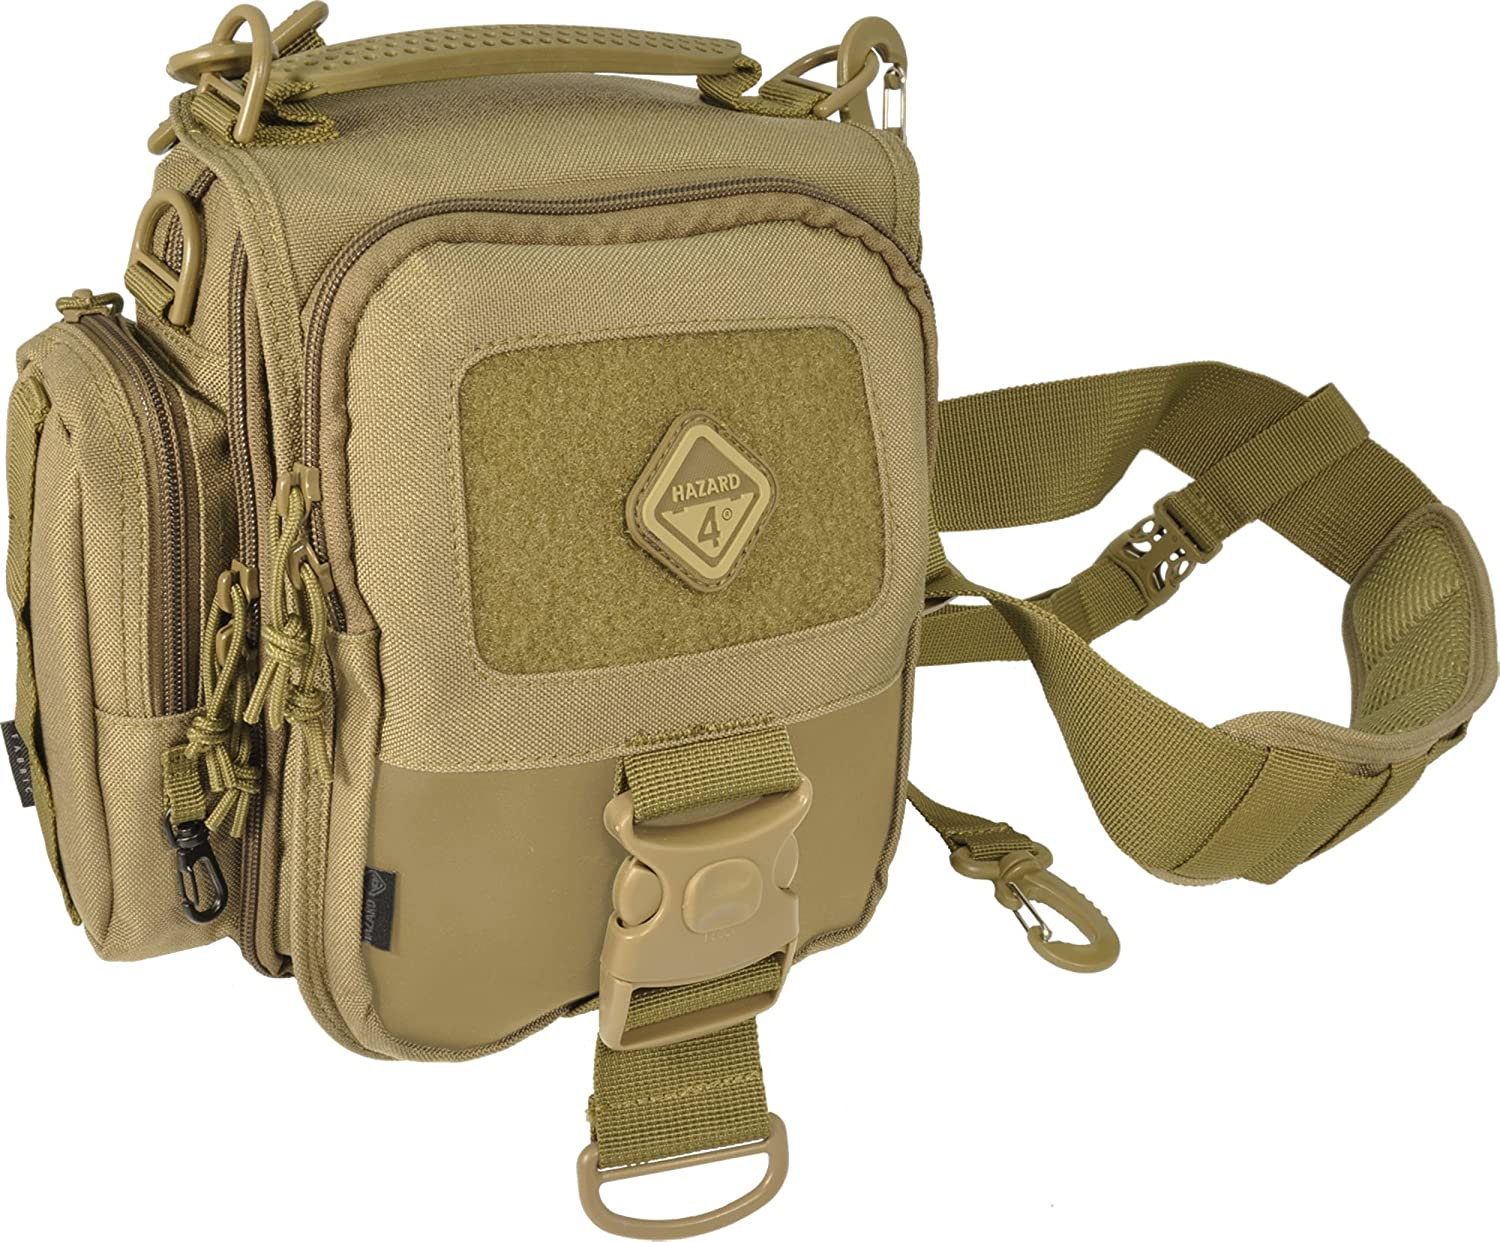 Hazard 4 Tonto Concealed Carry Mini-Messenger Shoulder Bag Travel Padded Coyote